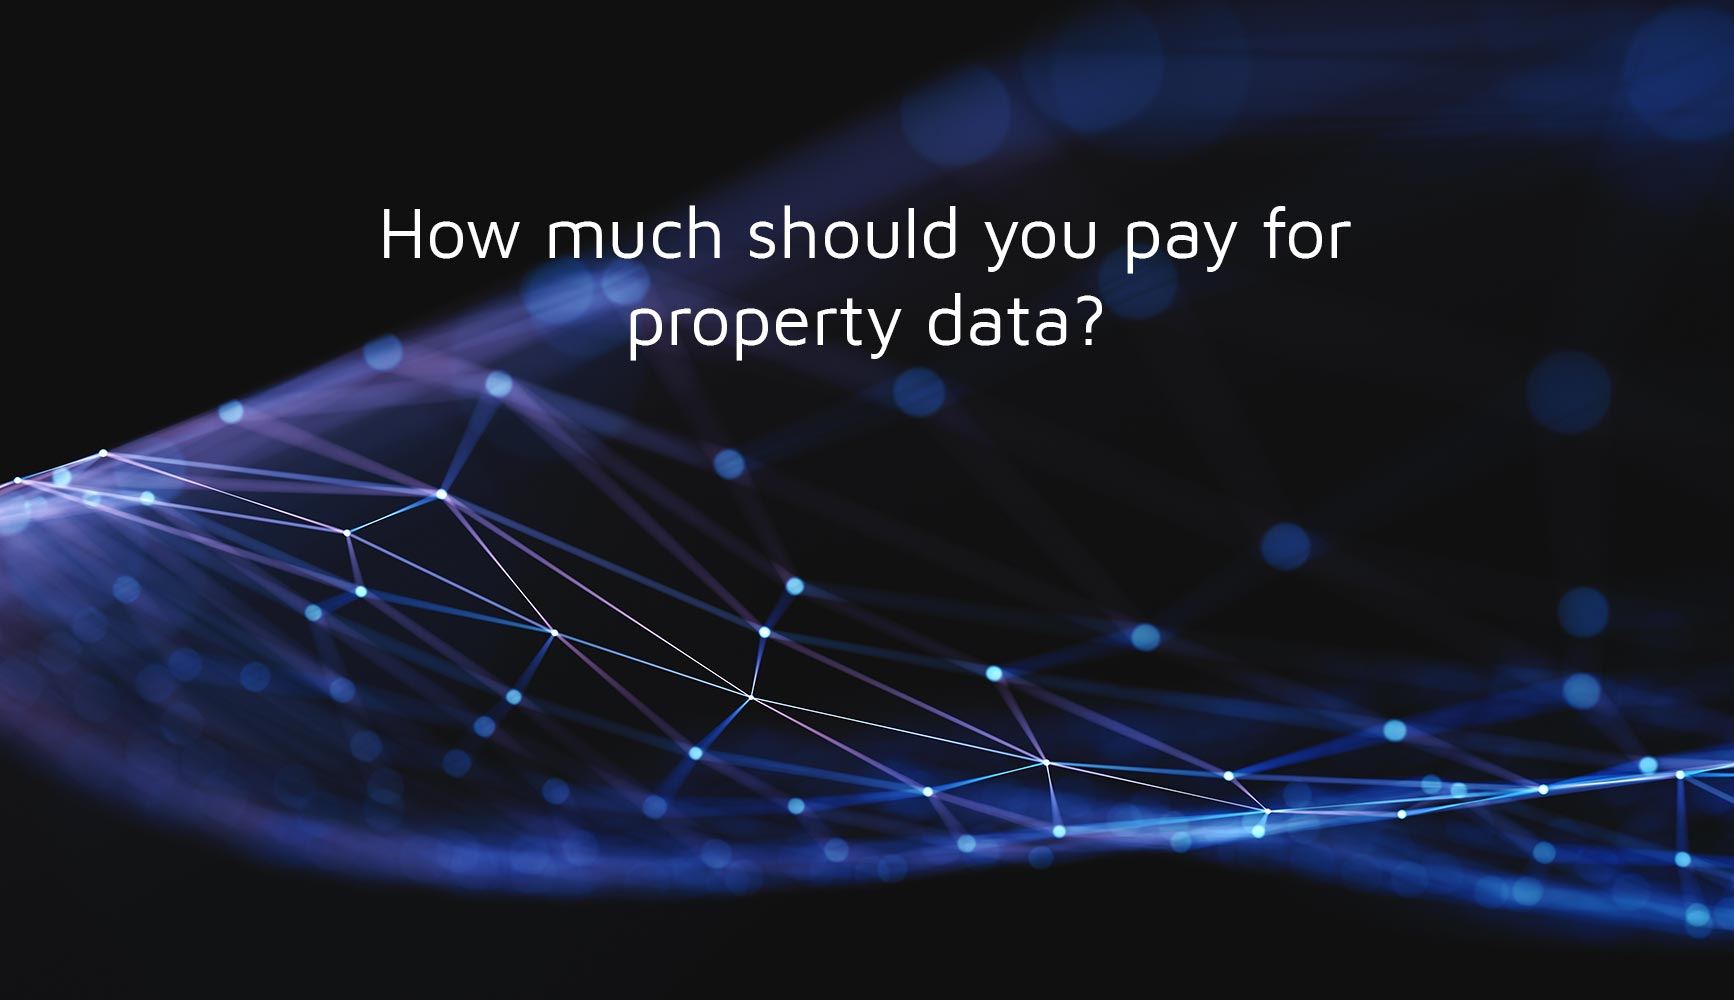 How much should you pay for property data?